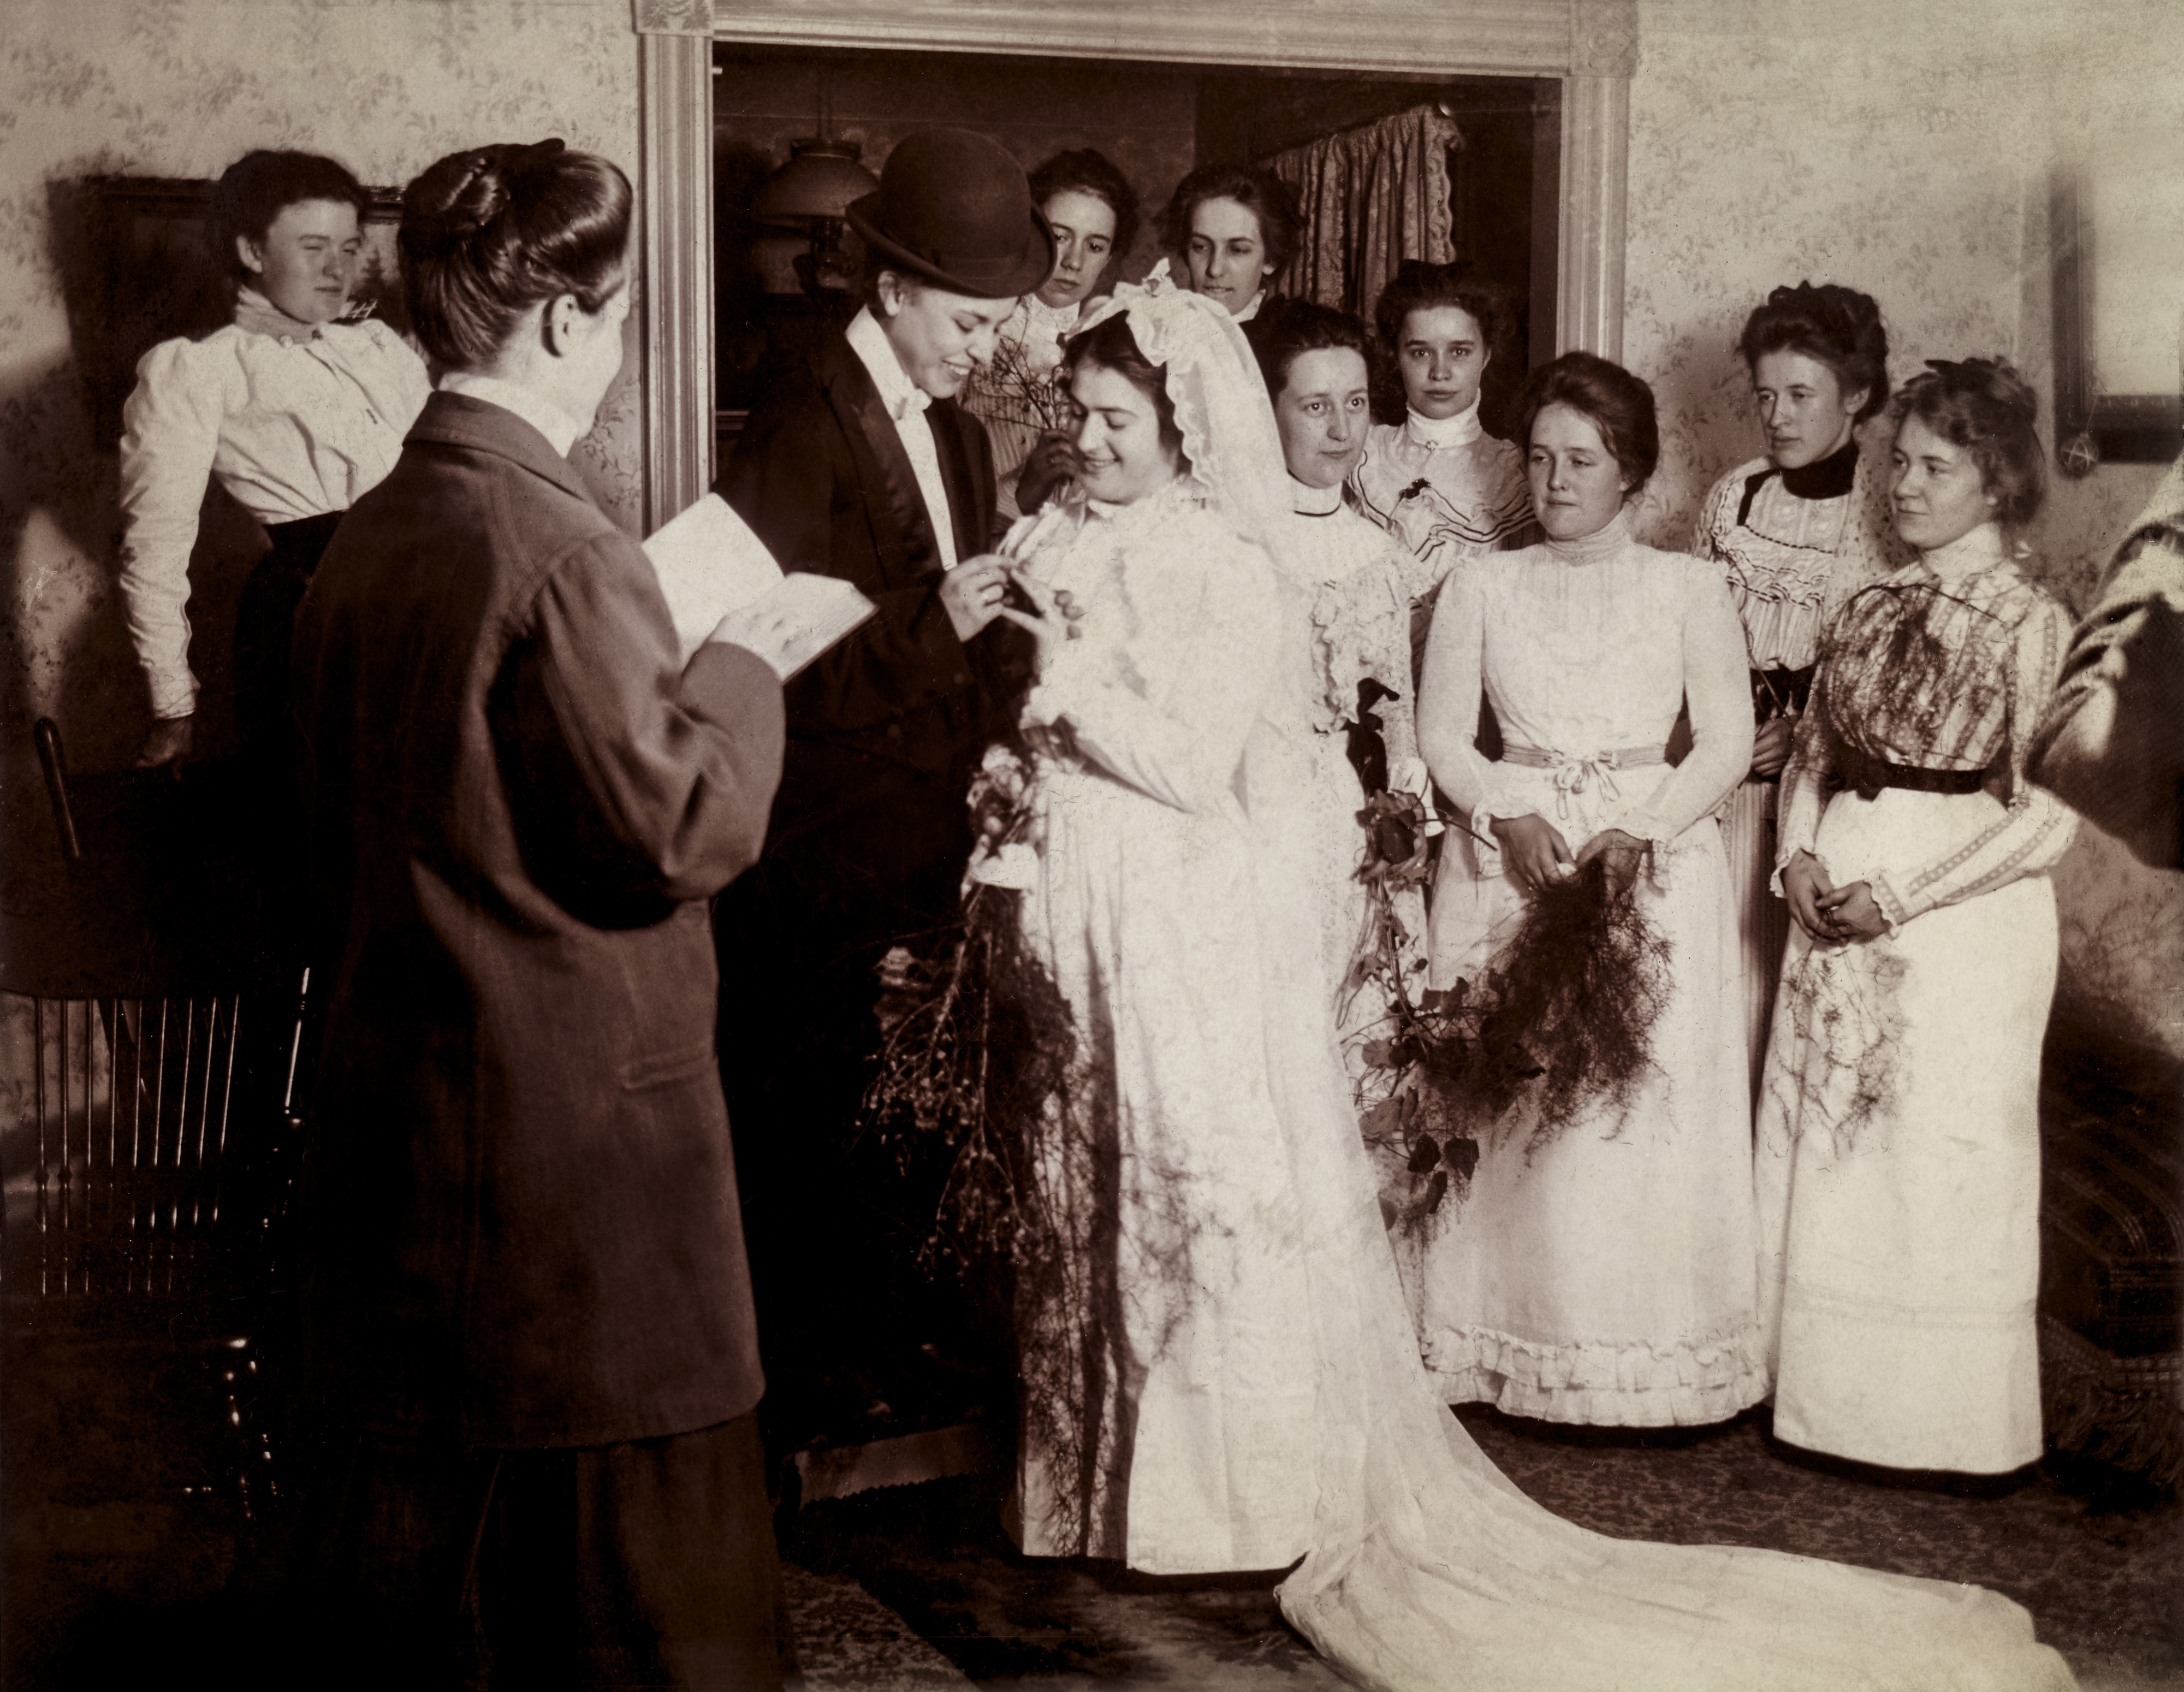 Mock wedding, United States, circa 1900.